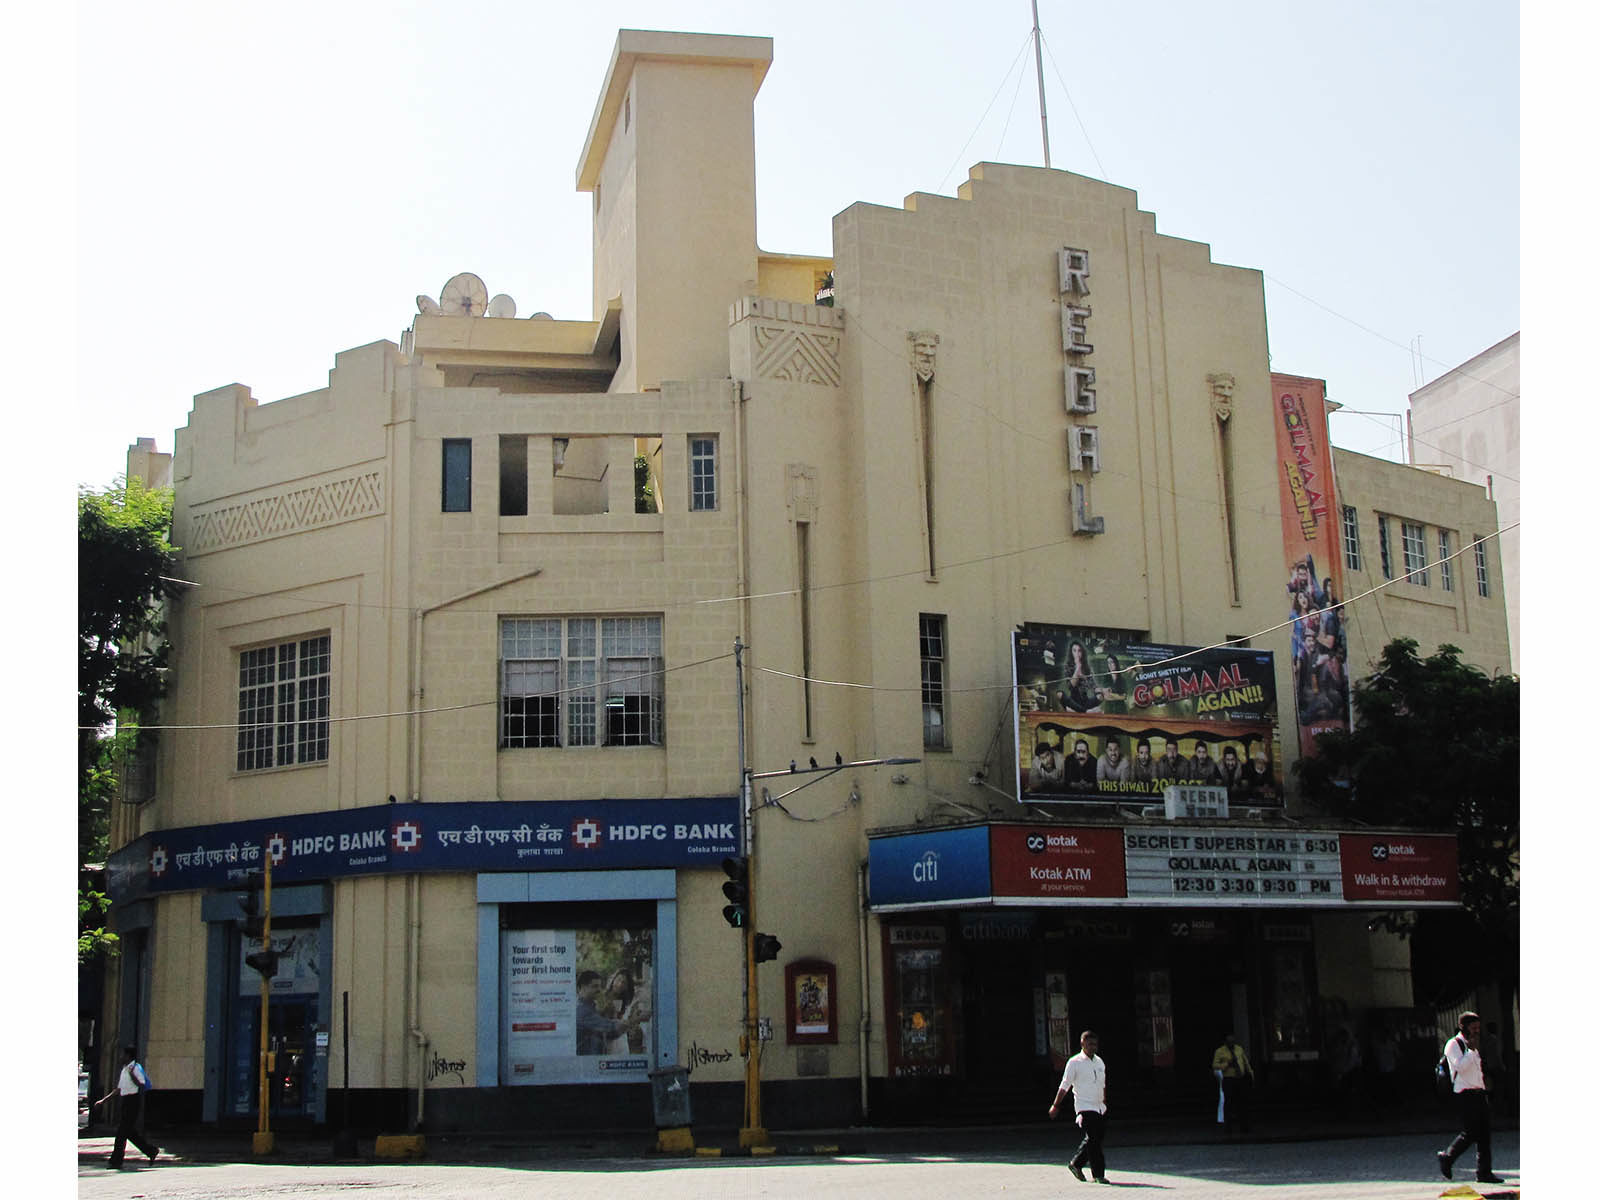 Regal Cinema, Colaba © Art Deco Mumbai Trust